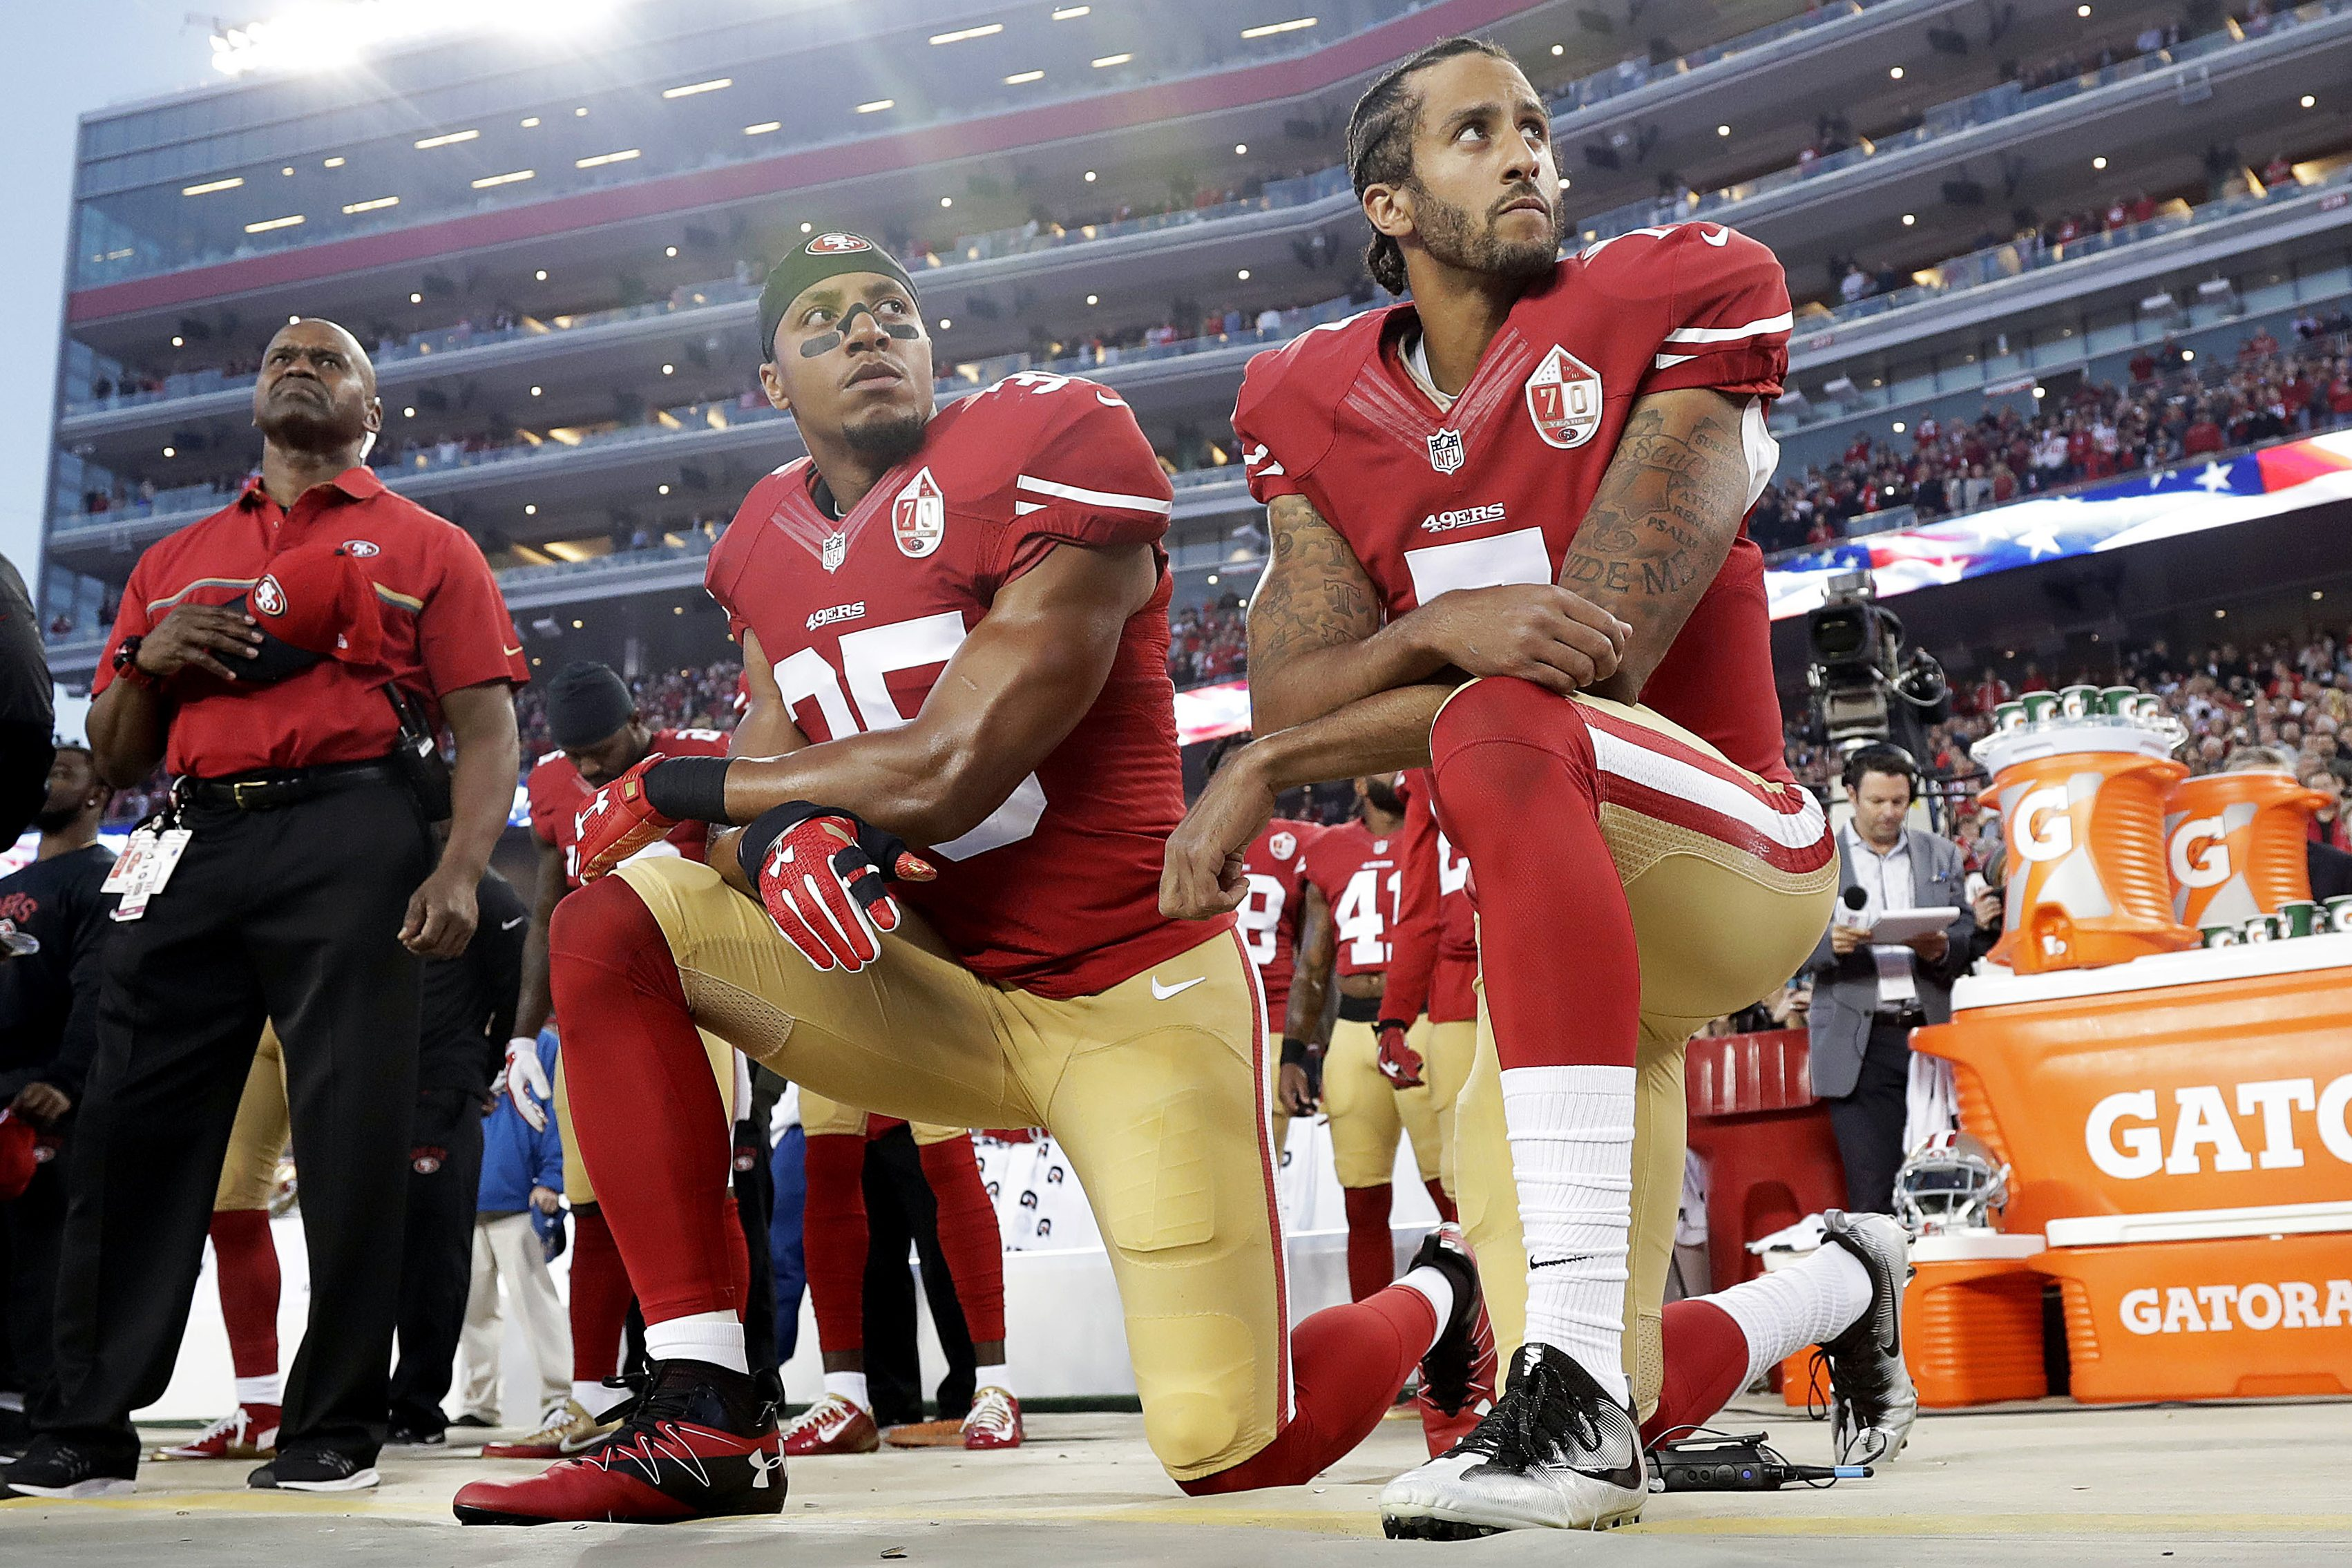 San Francisco 49ers safety Eric Reid (35) and quarterback Colin Kaepernick (7) kneel during the national anthem before an NFL football game against the Los Angeles Rams in 2016.